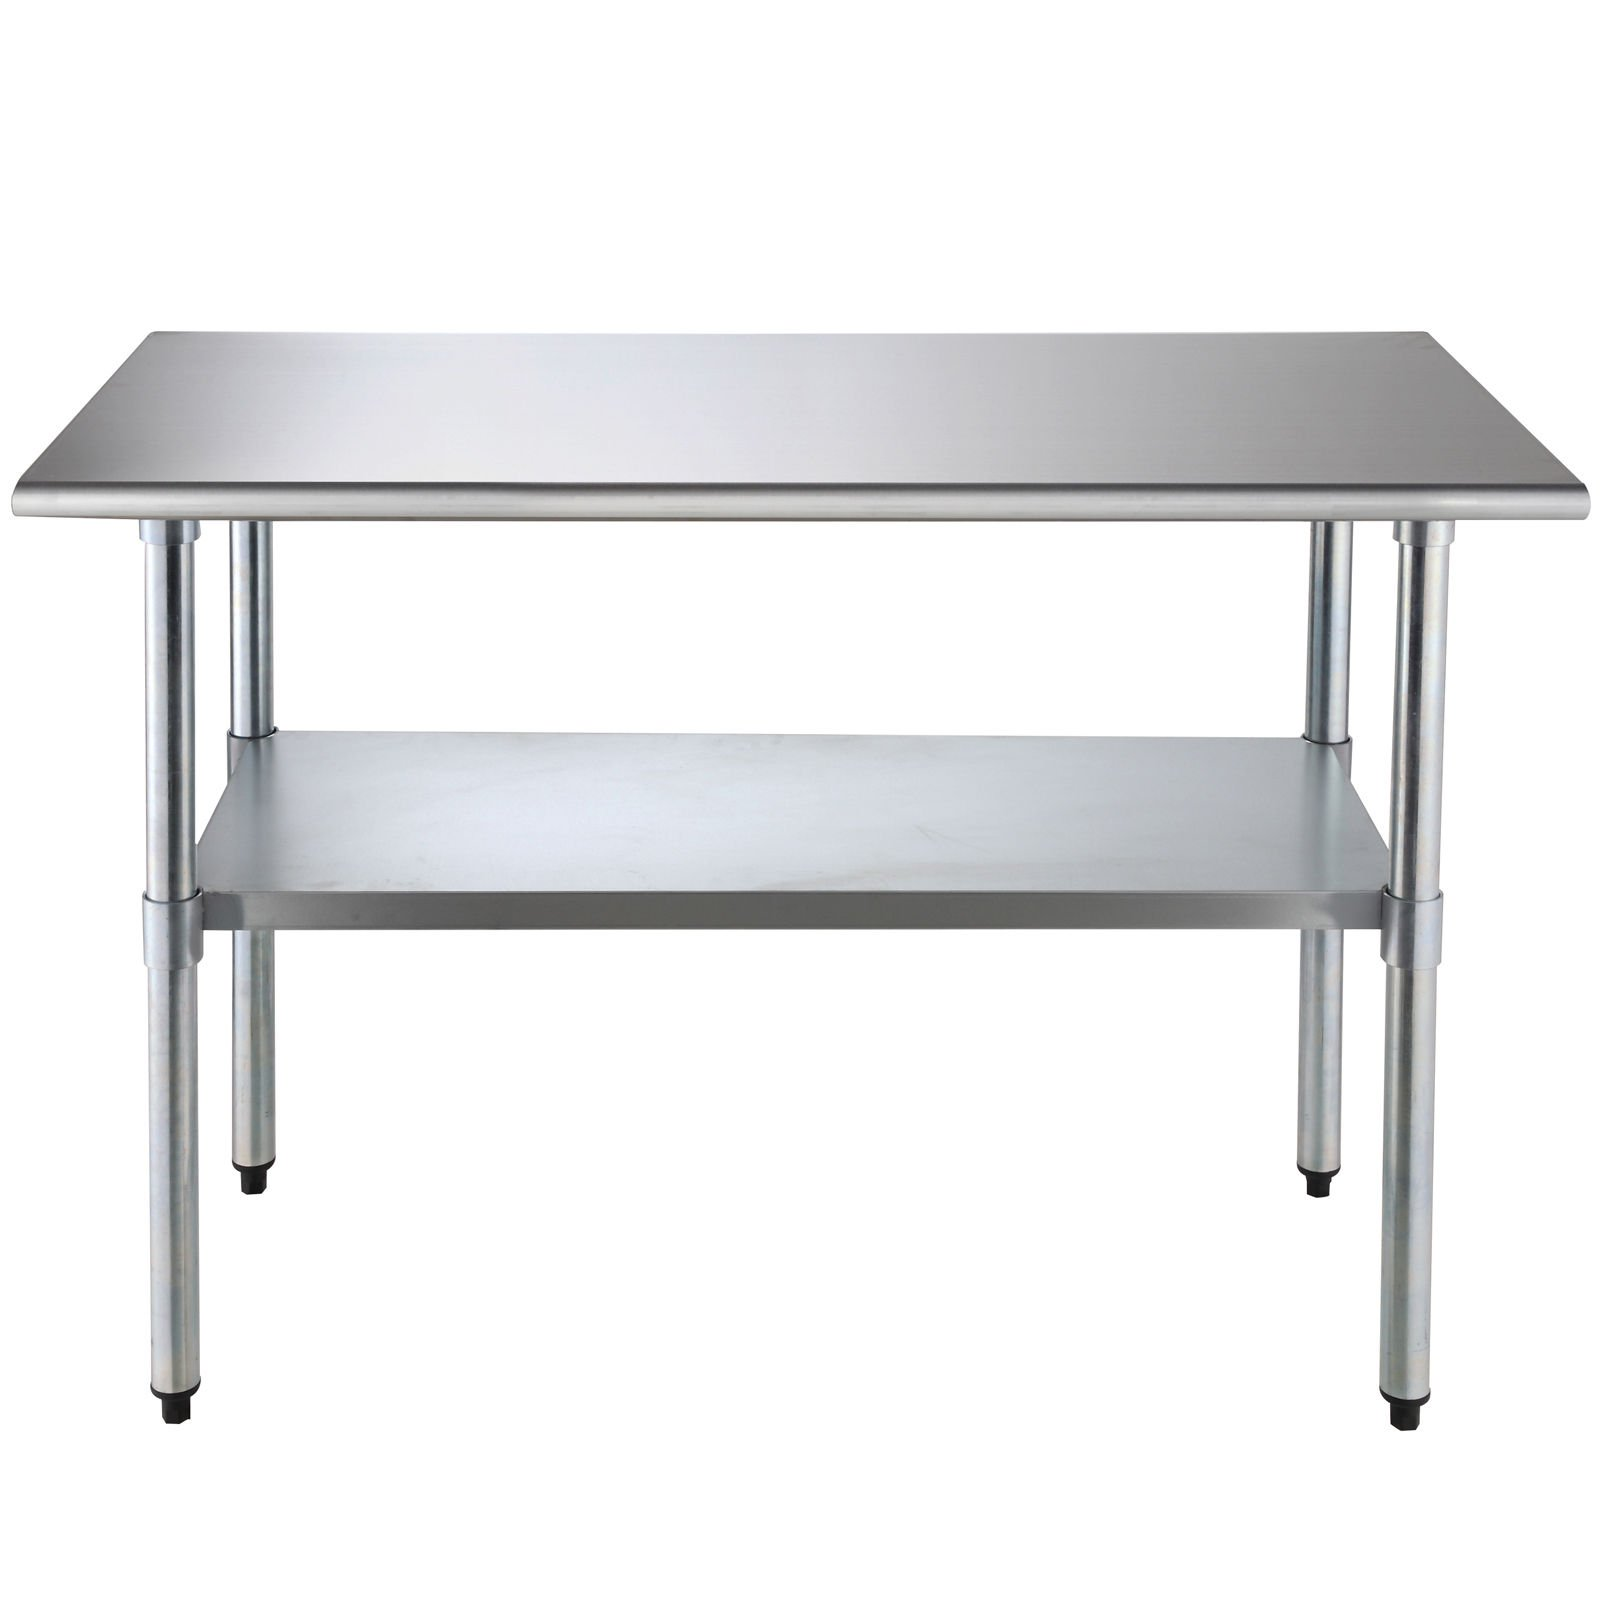 SUNCOO Commercial Stainless Steel Work Table Food Grade Kitchen Prep Workbench Metal Restaurant Countertop Workstation with Adjustable Undershelf 48 in Long x 24 in Deep by SUNCOO (Image #2)